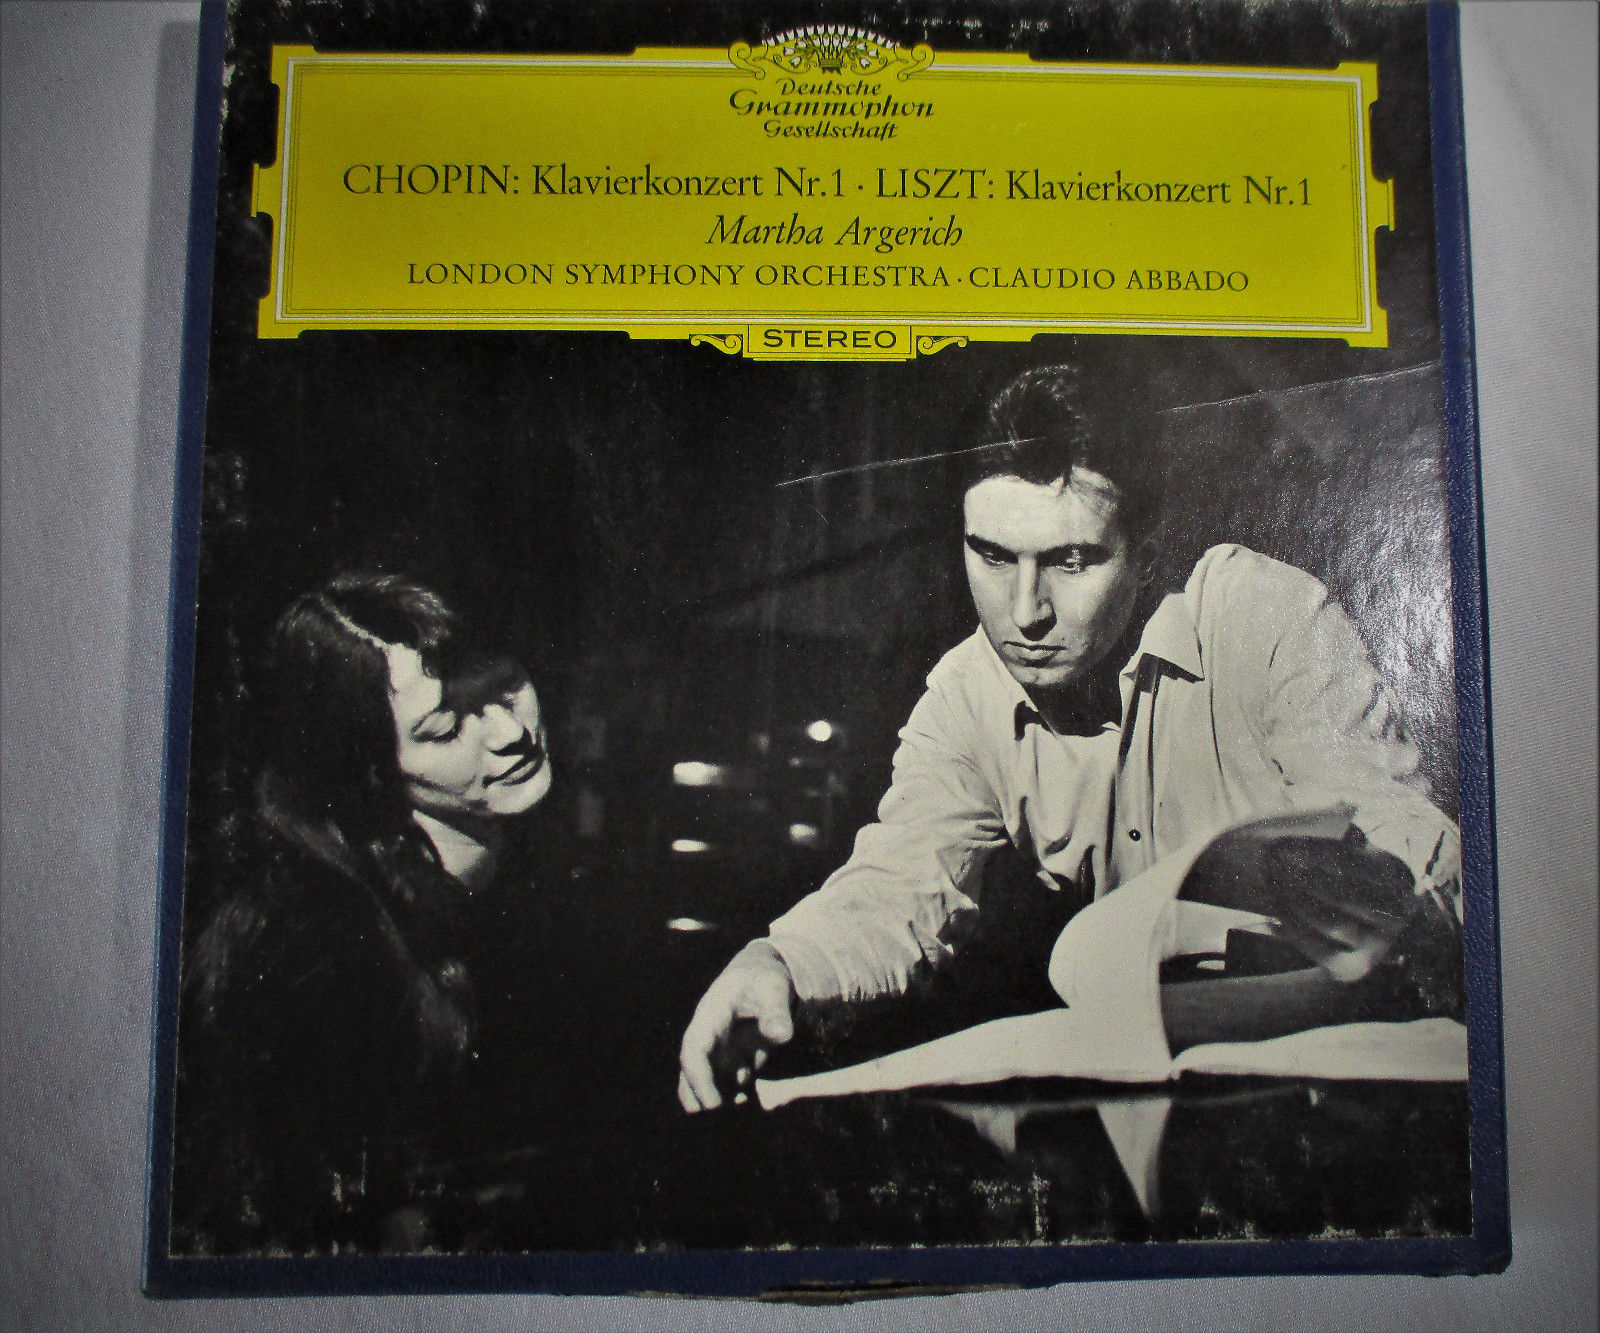 CHOPIN Classical Reel To Reel DGG USA 7.5 IPS TESTED TAPE Argerich Abbado VG+